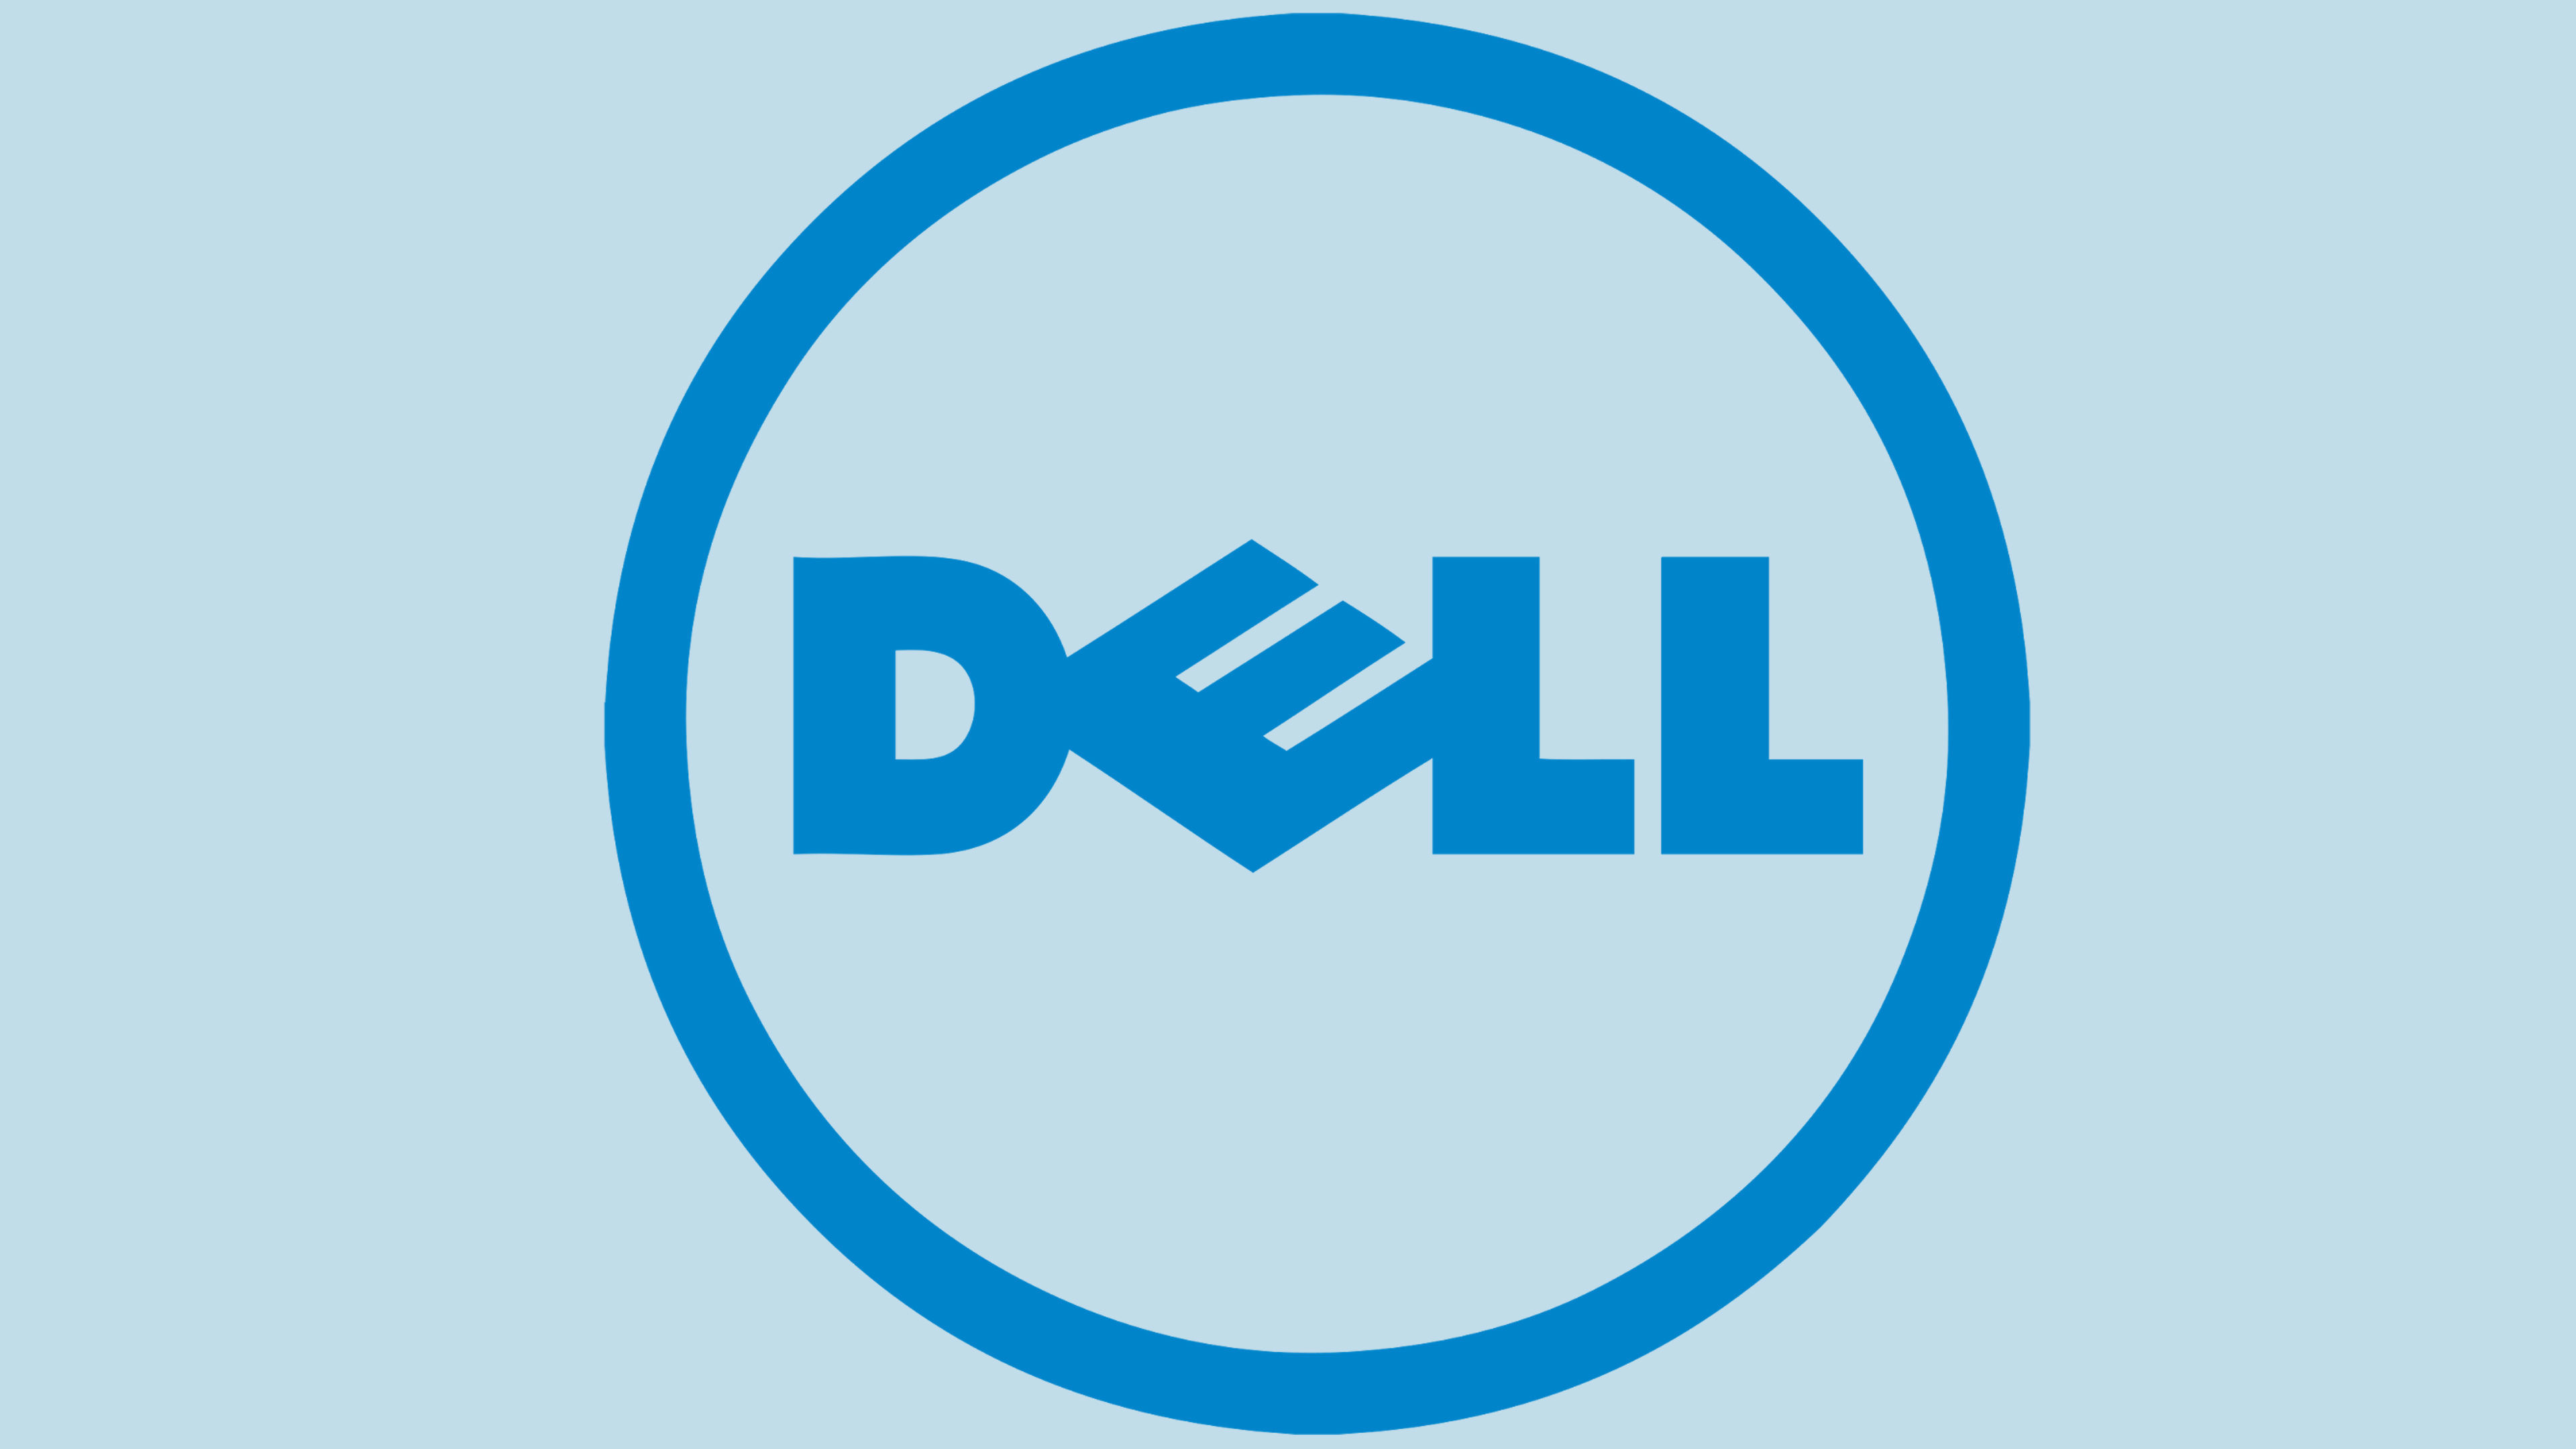 dell logo 4k widescreen desktop wallpaper 878